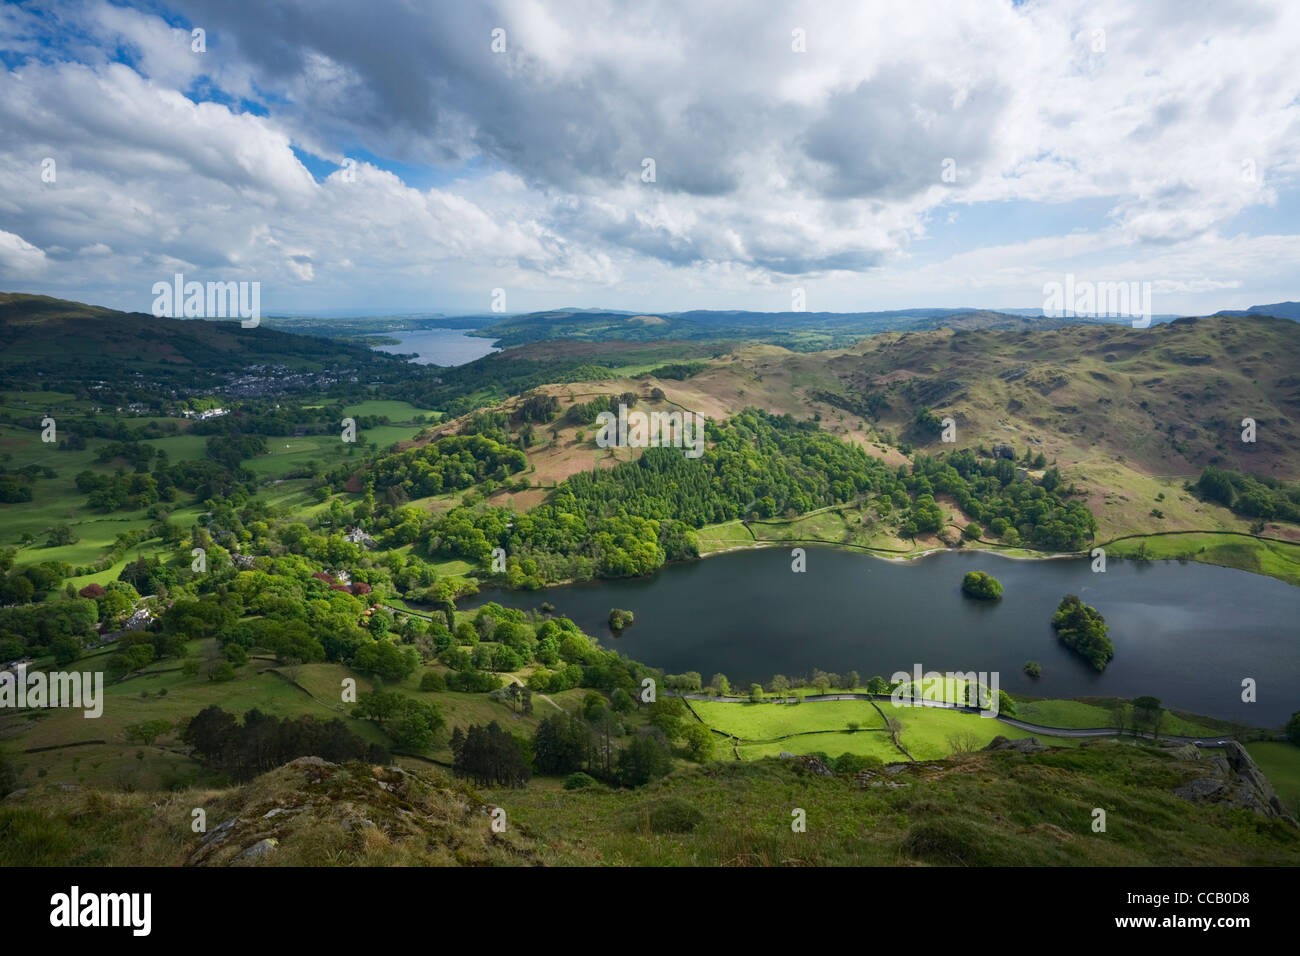 Rydal Water and Windermere in the Distance from Nab Scar. Lake District National Park. Cumbria. England. UK. - Stock Image